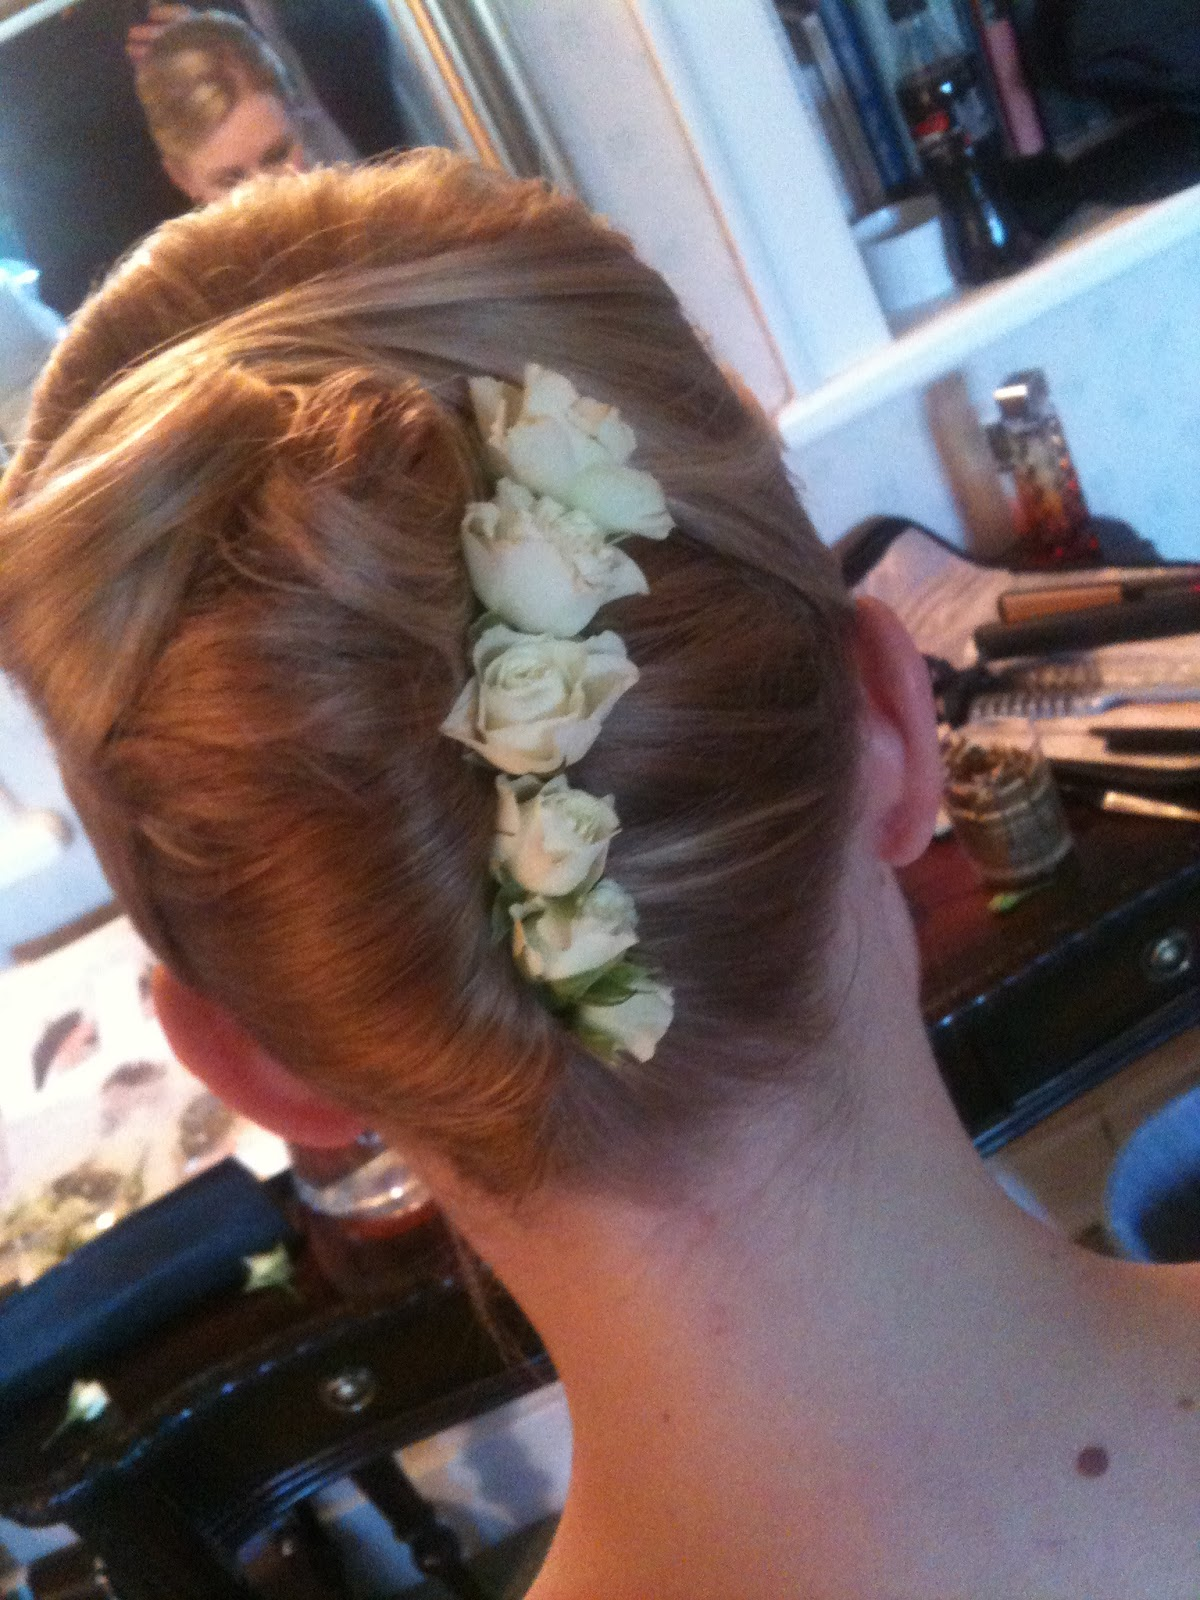 the bridesmaids hair, both bridesmaids had asked for a french roll